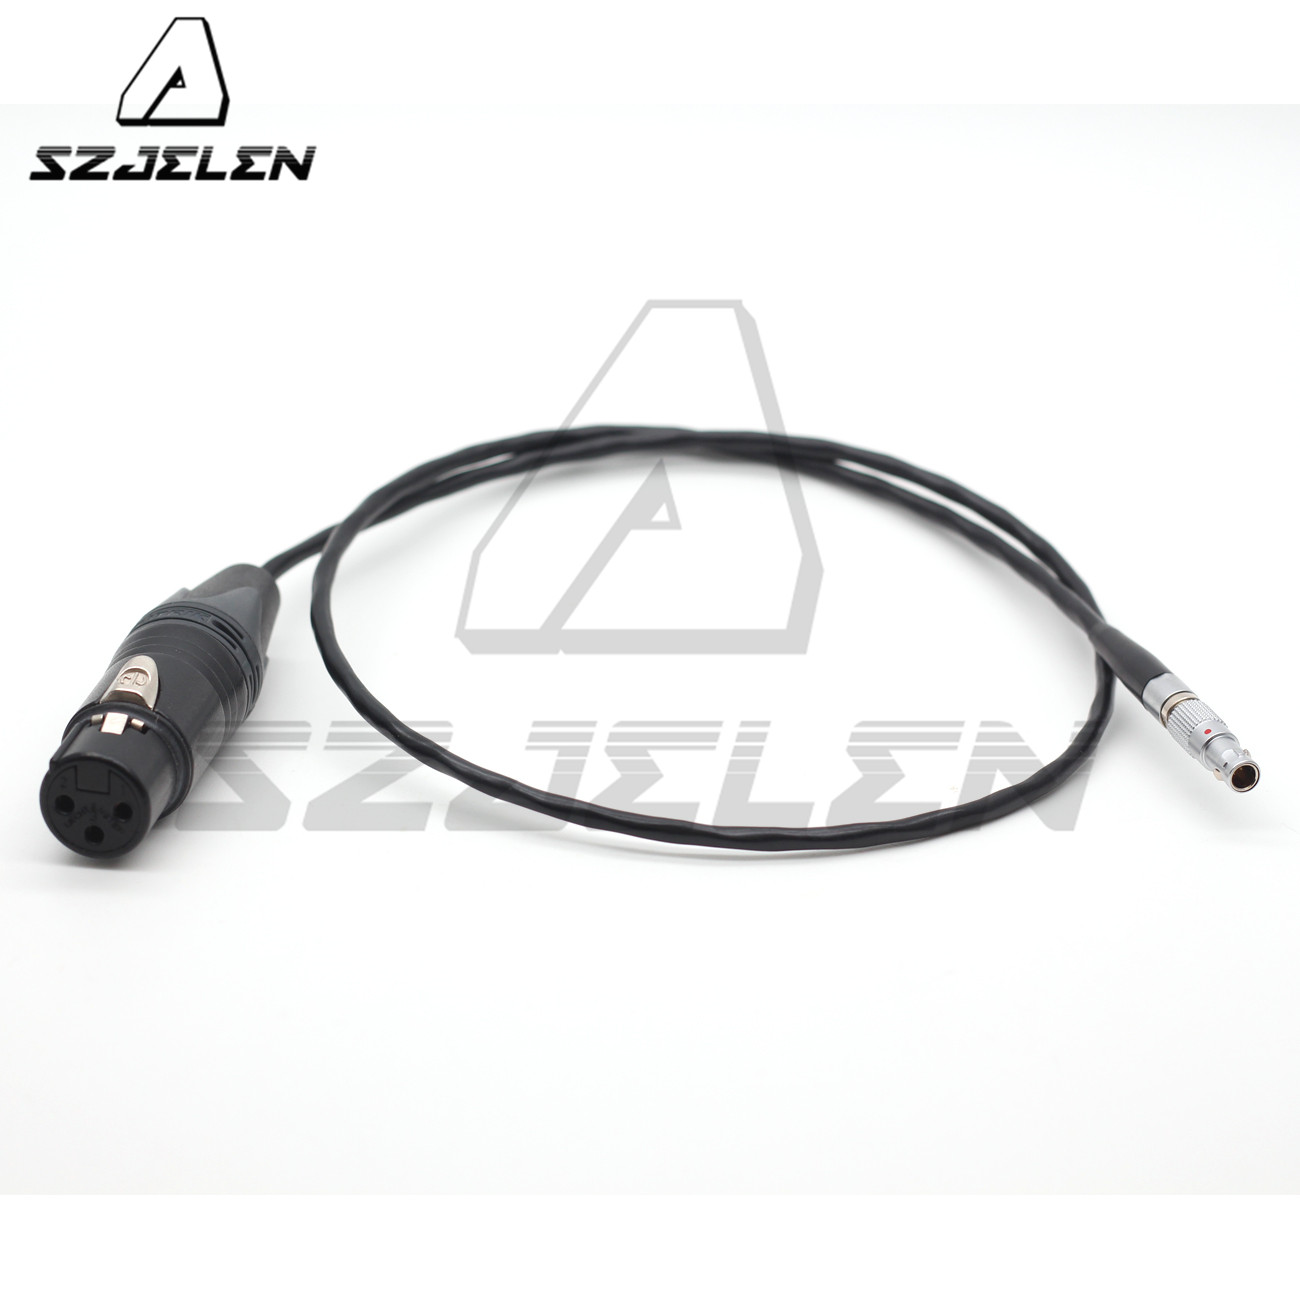 SZJELEN FGB 3pin to TA3F Mini XLR Cable for Zaxcom TRX900 ZFR300,Zaxcom ZFR400 Audio Line